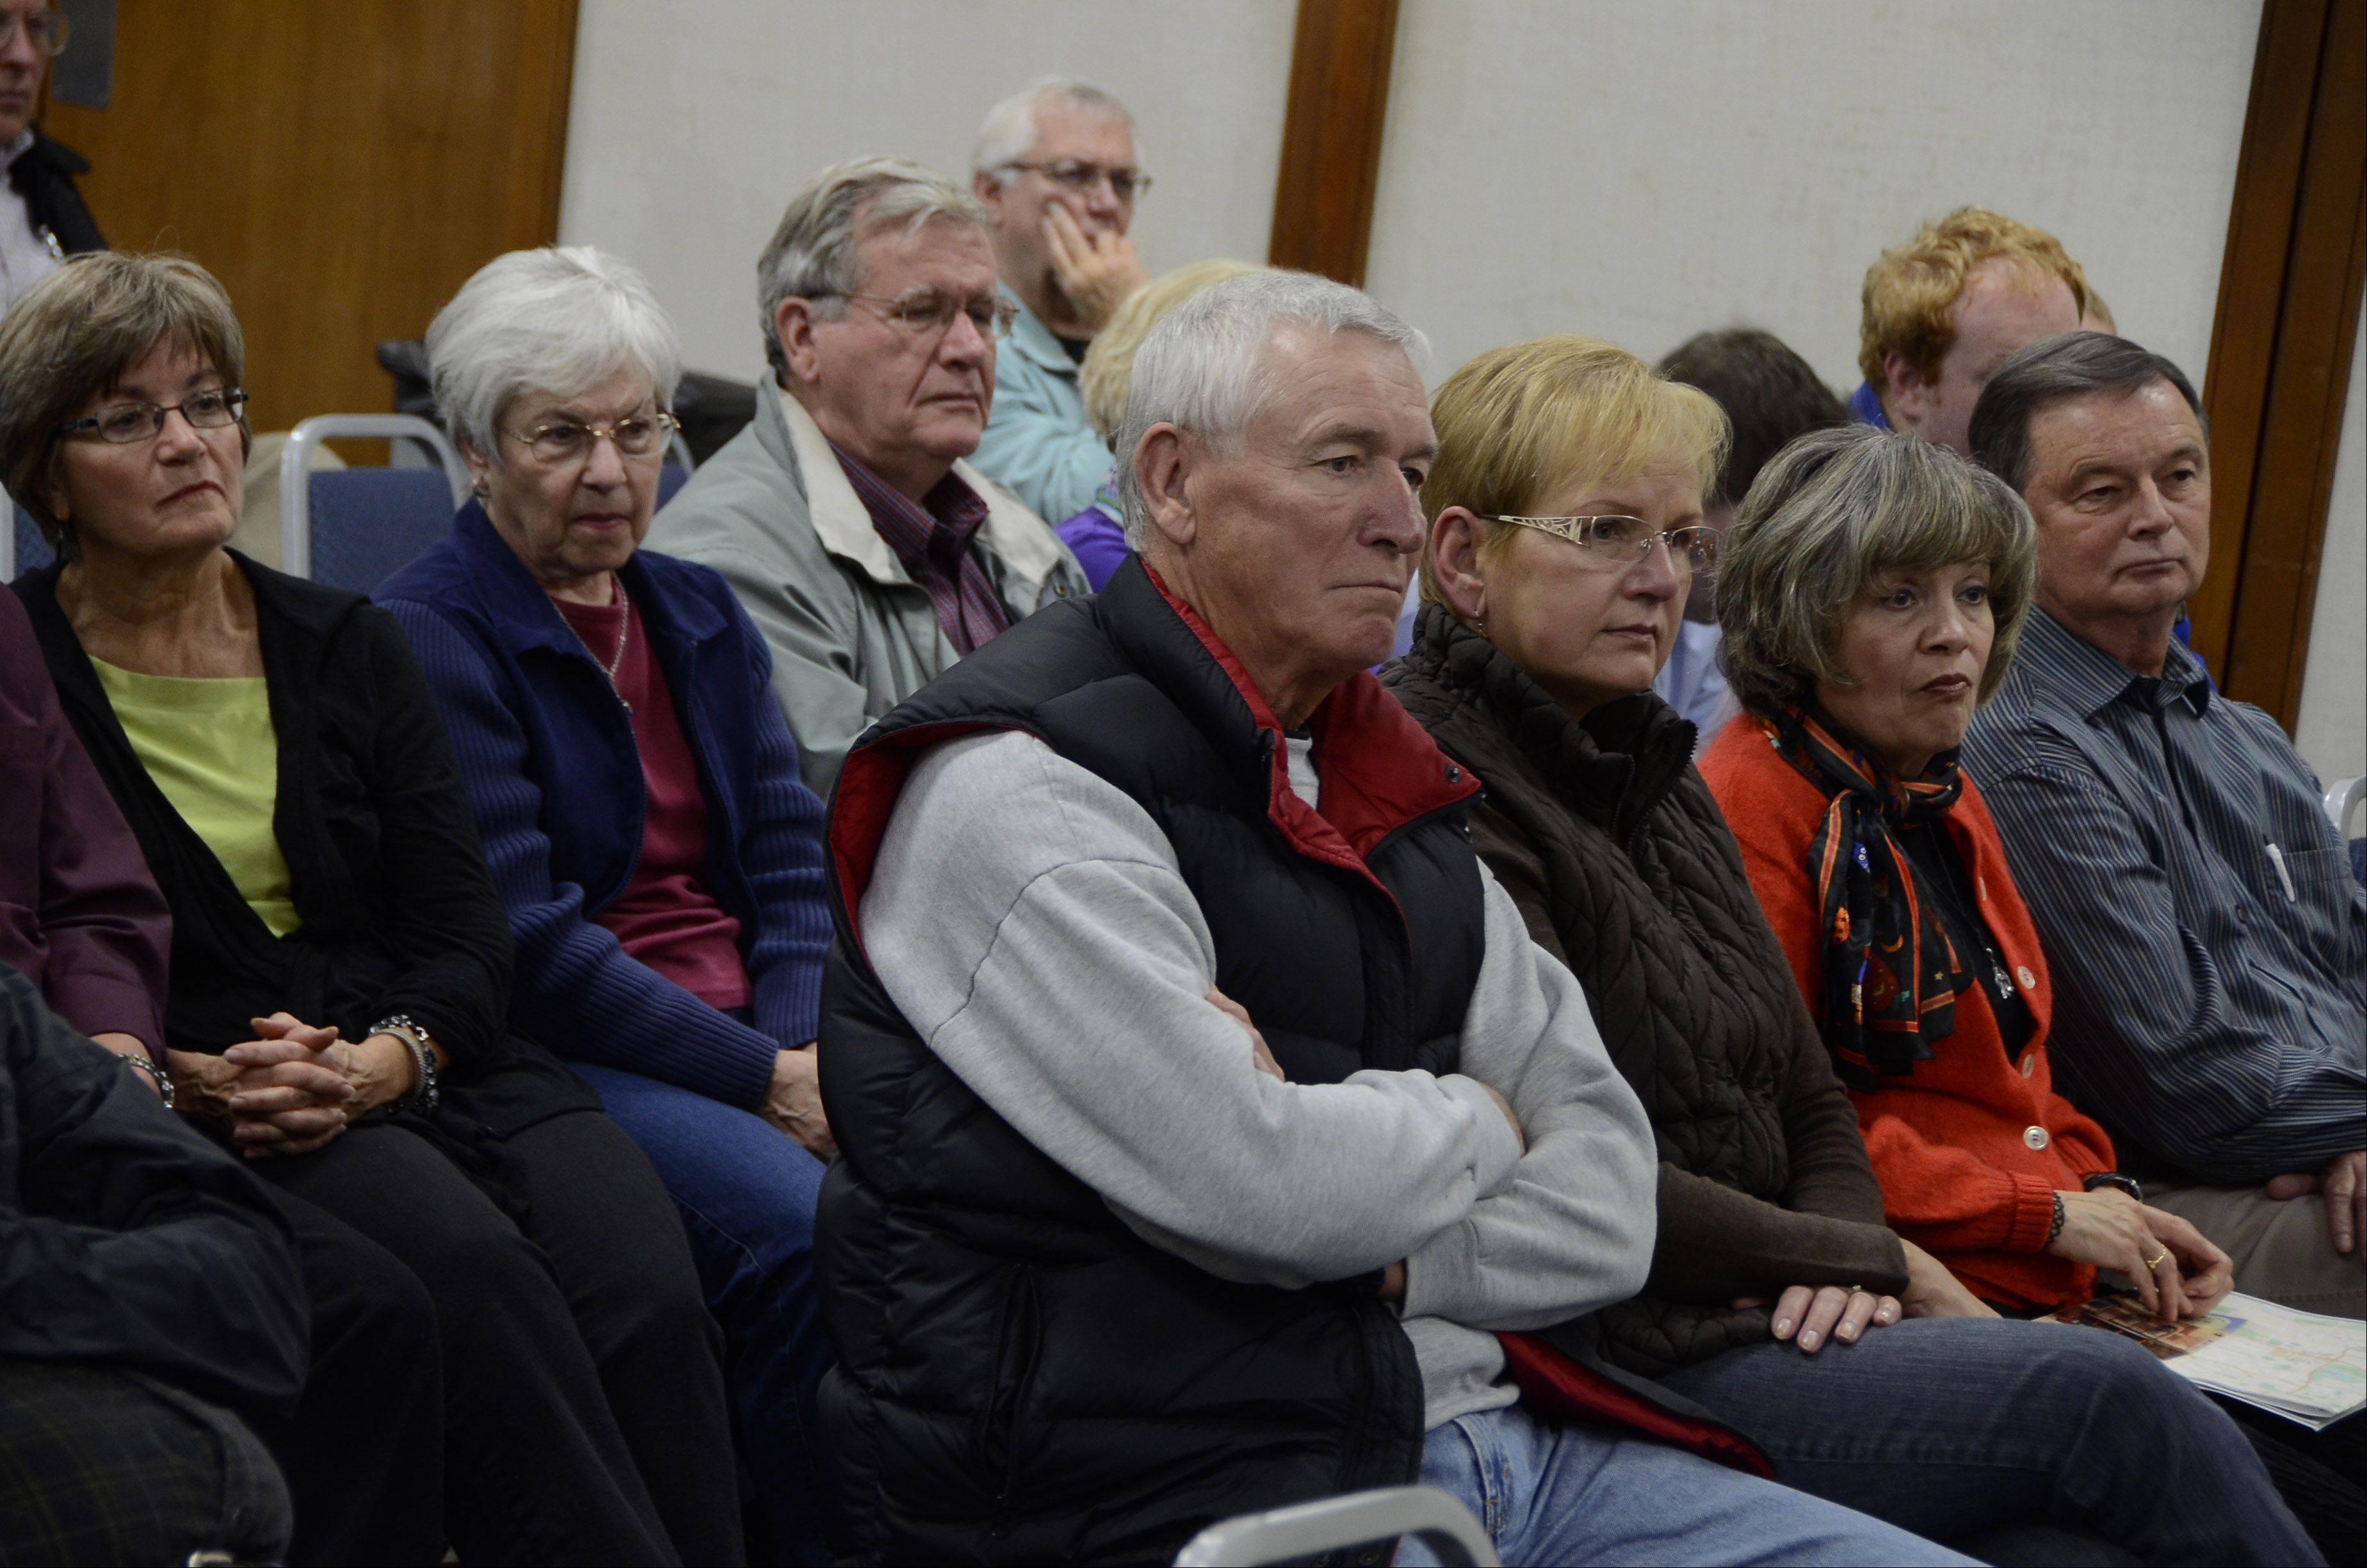 Bill Zars/bzars@dailyherald.comThe audience listens closely during a Daily Herald Subscriber Total Access political forum at Wednesday at the Schaumburg Campus of Roosevelt University.